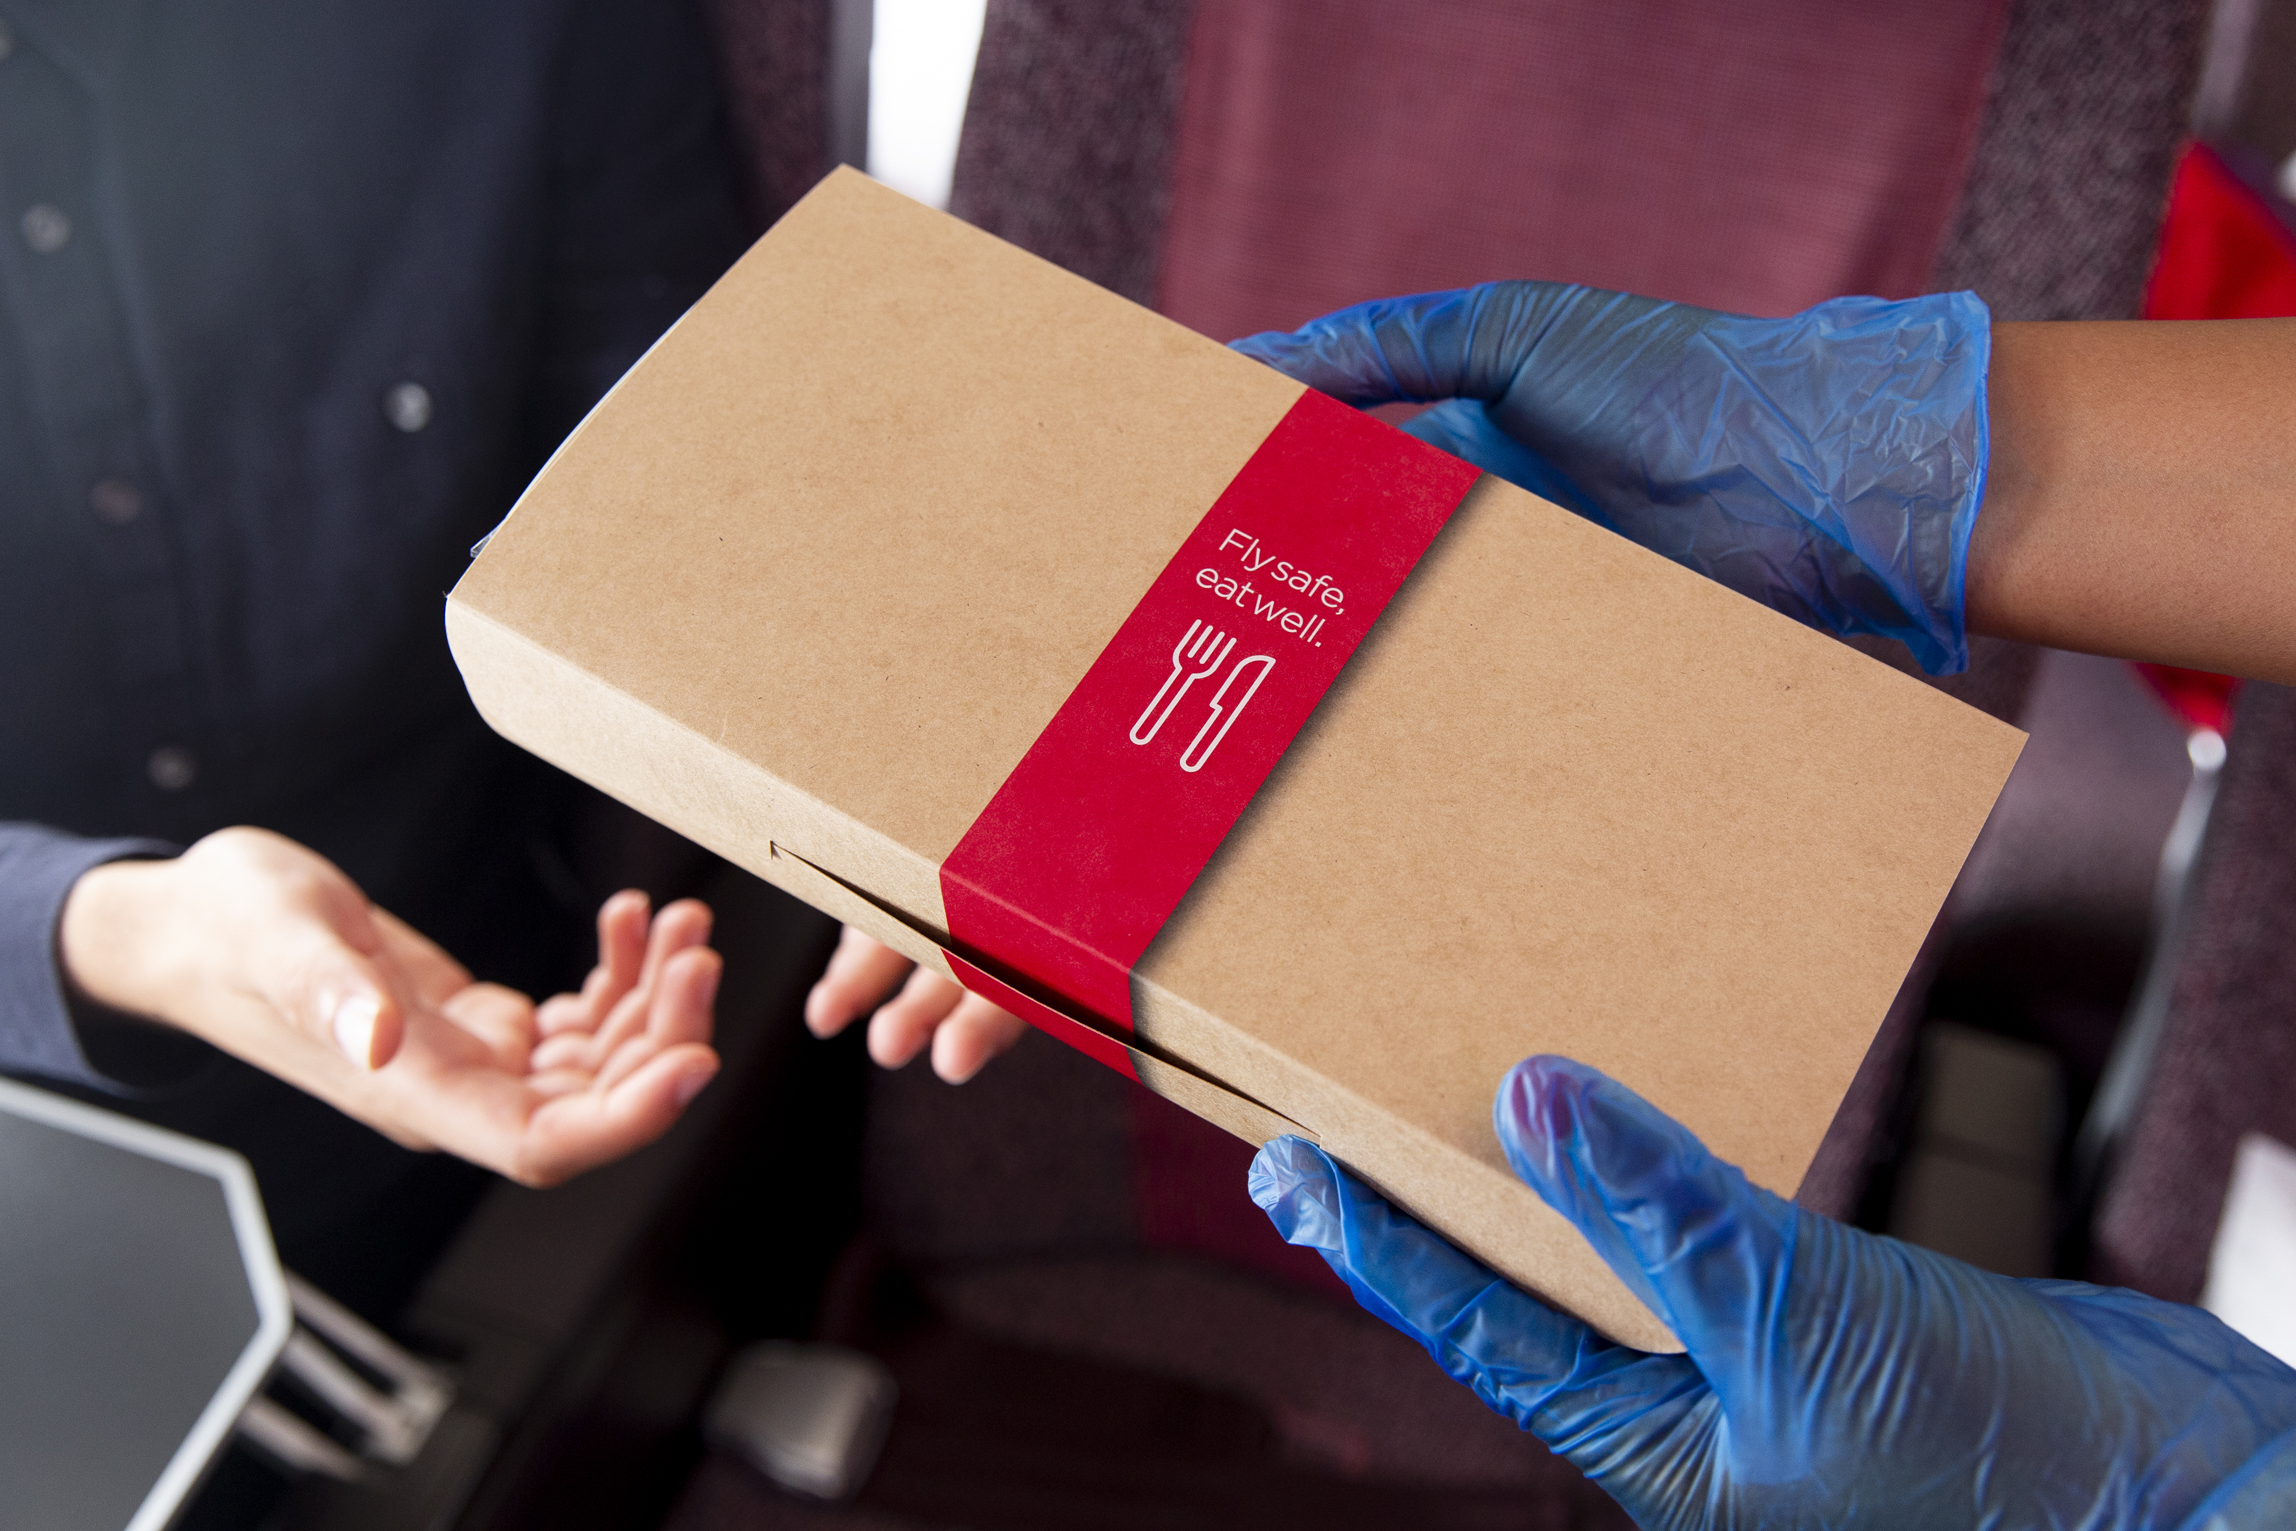 Virgin Atlantic passengers will receive a modified food offering